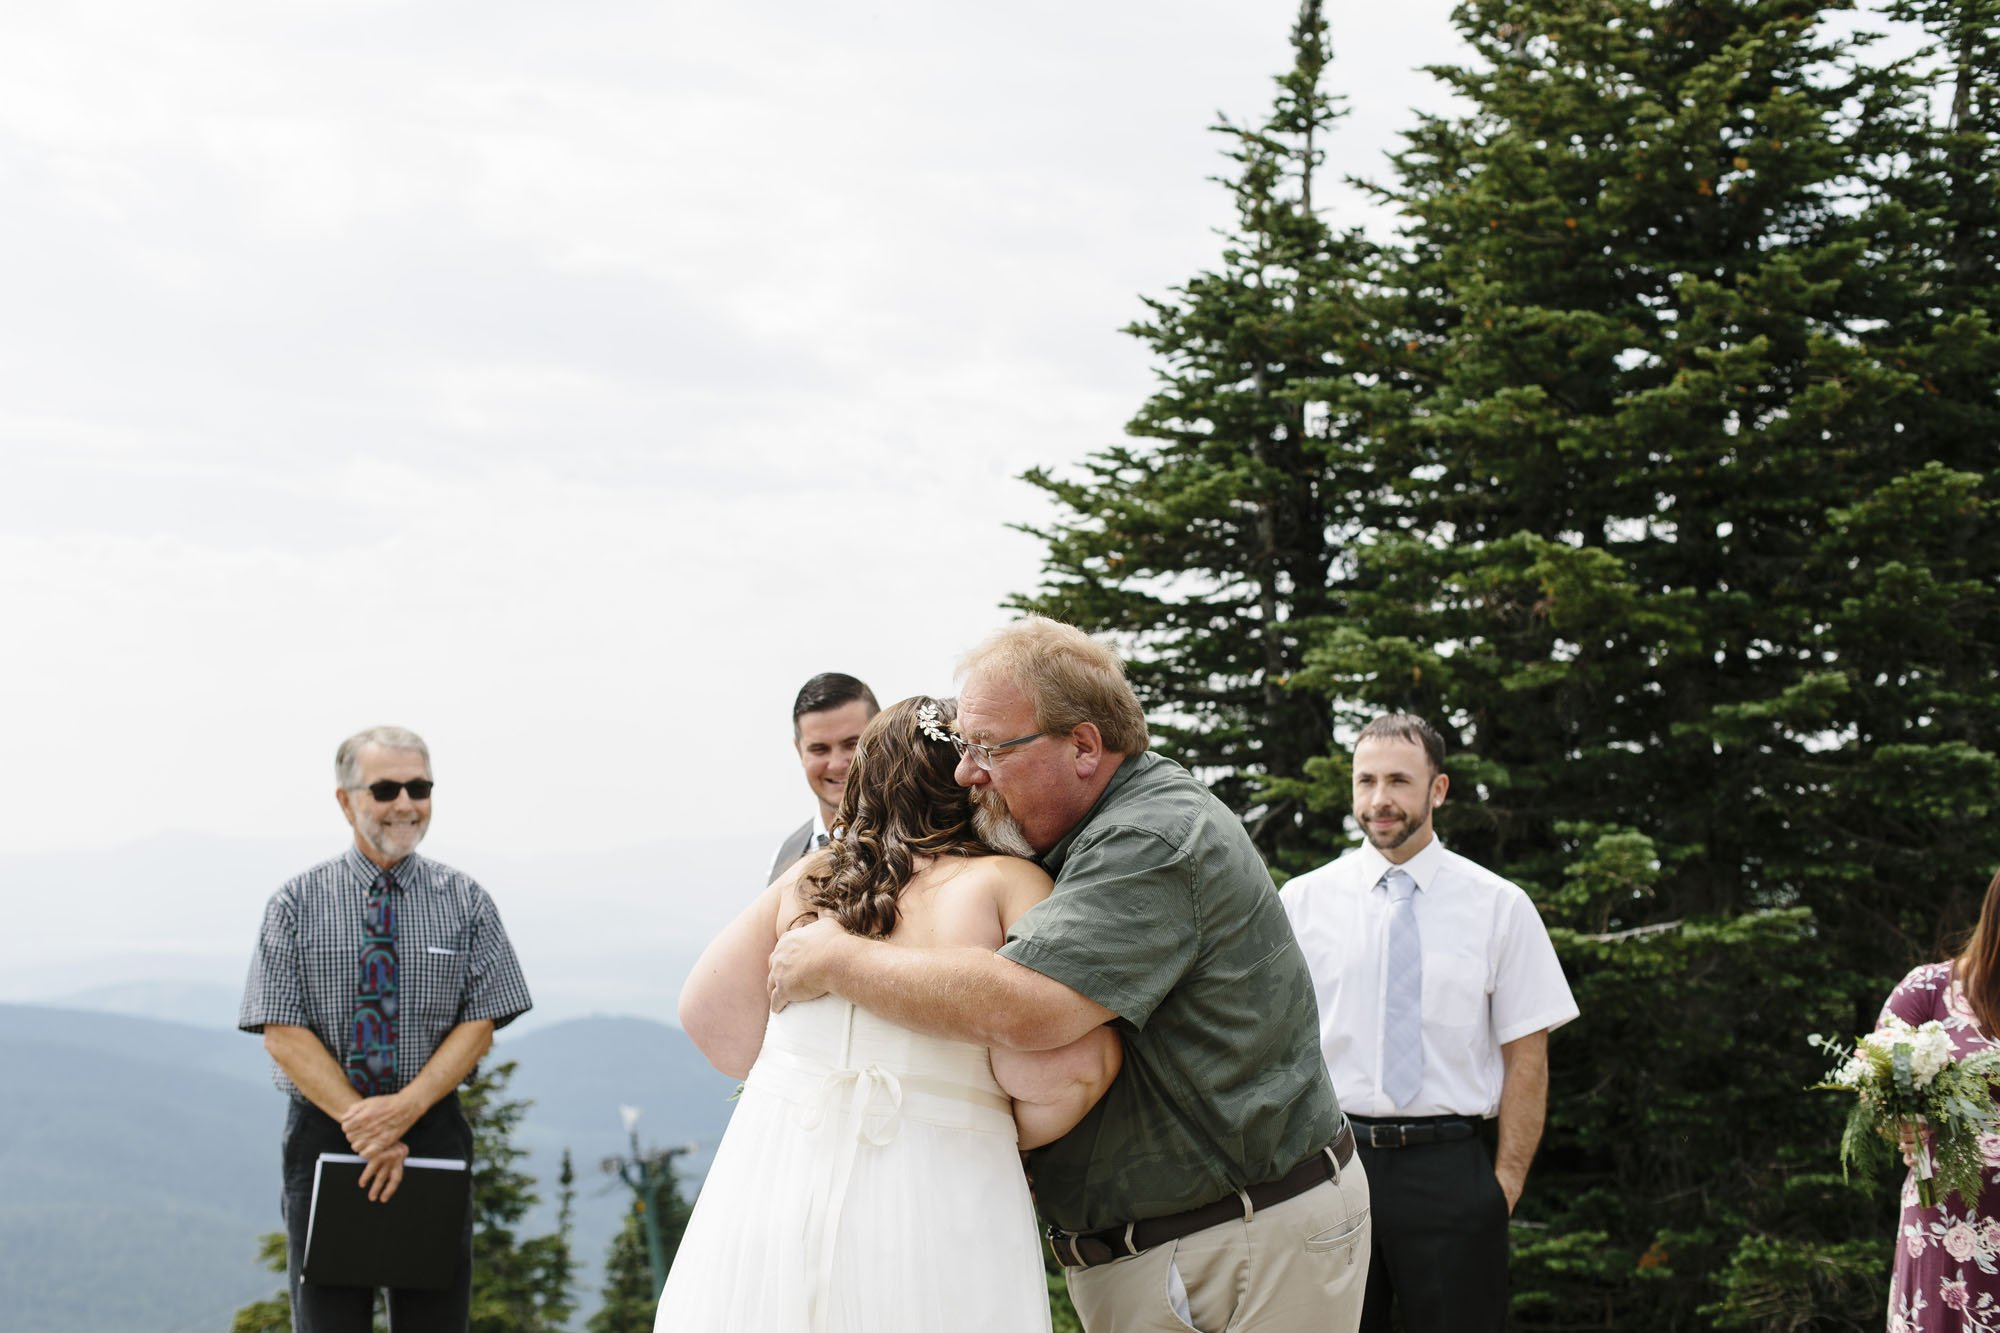 Mt Spokane Elopement Small Wedding // Emily Wenzel Photography